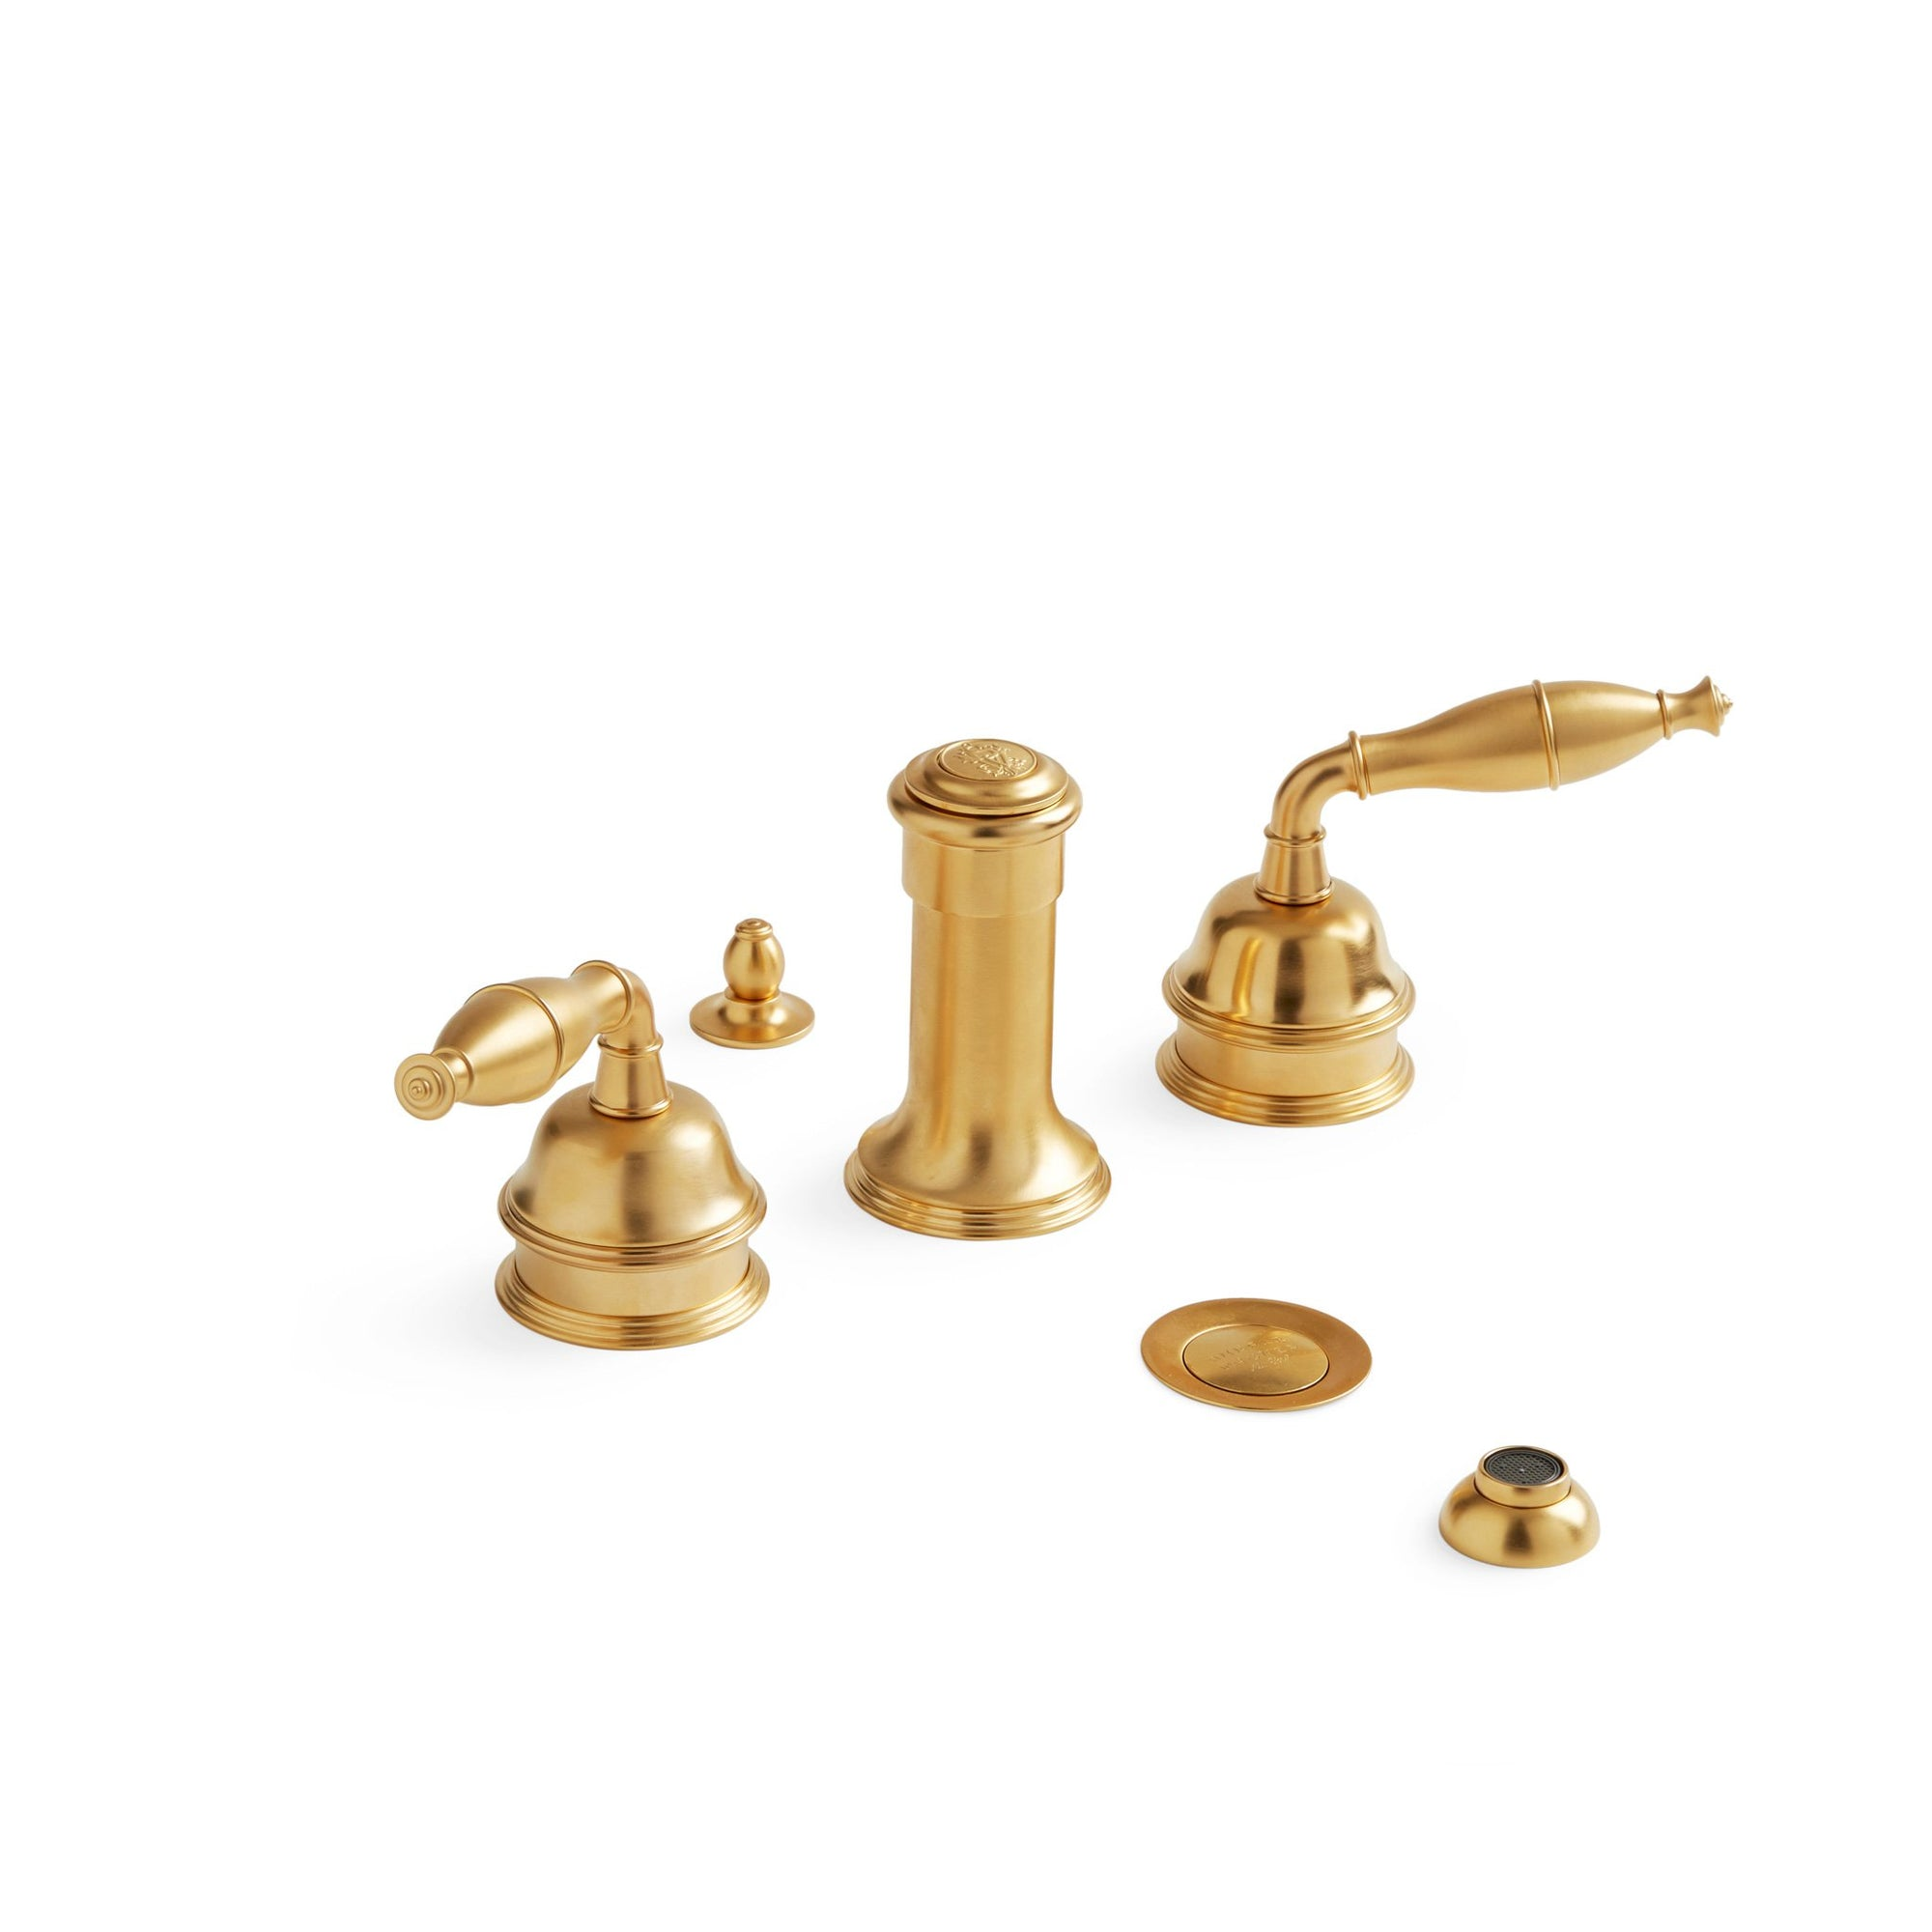 0990BDT-4H-GP Sherle Wagner International Grey Series I Lever Bidet Set in Gold Plate metal finish